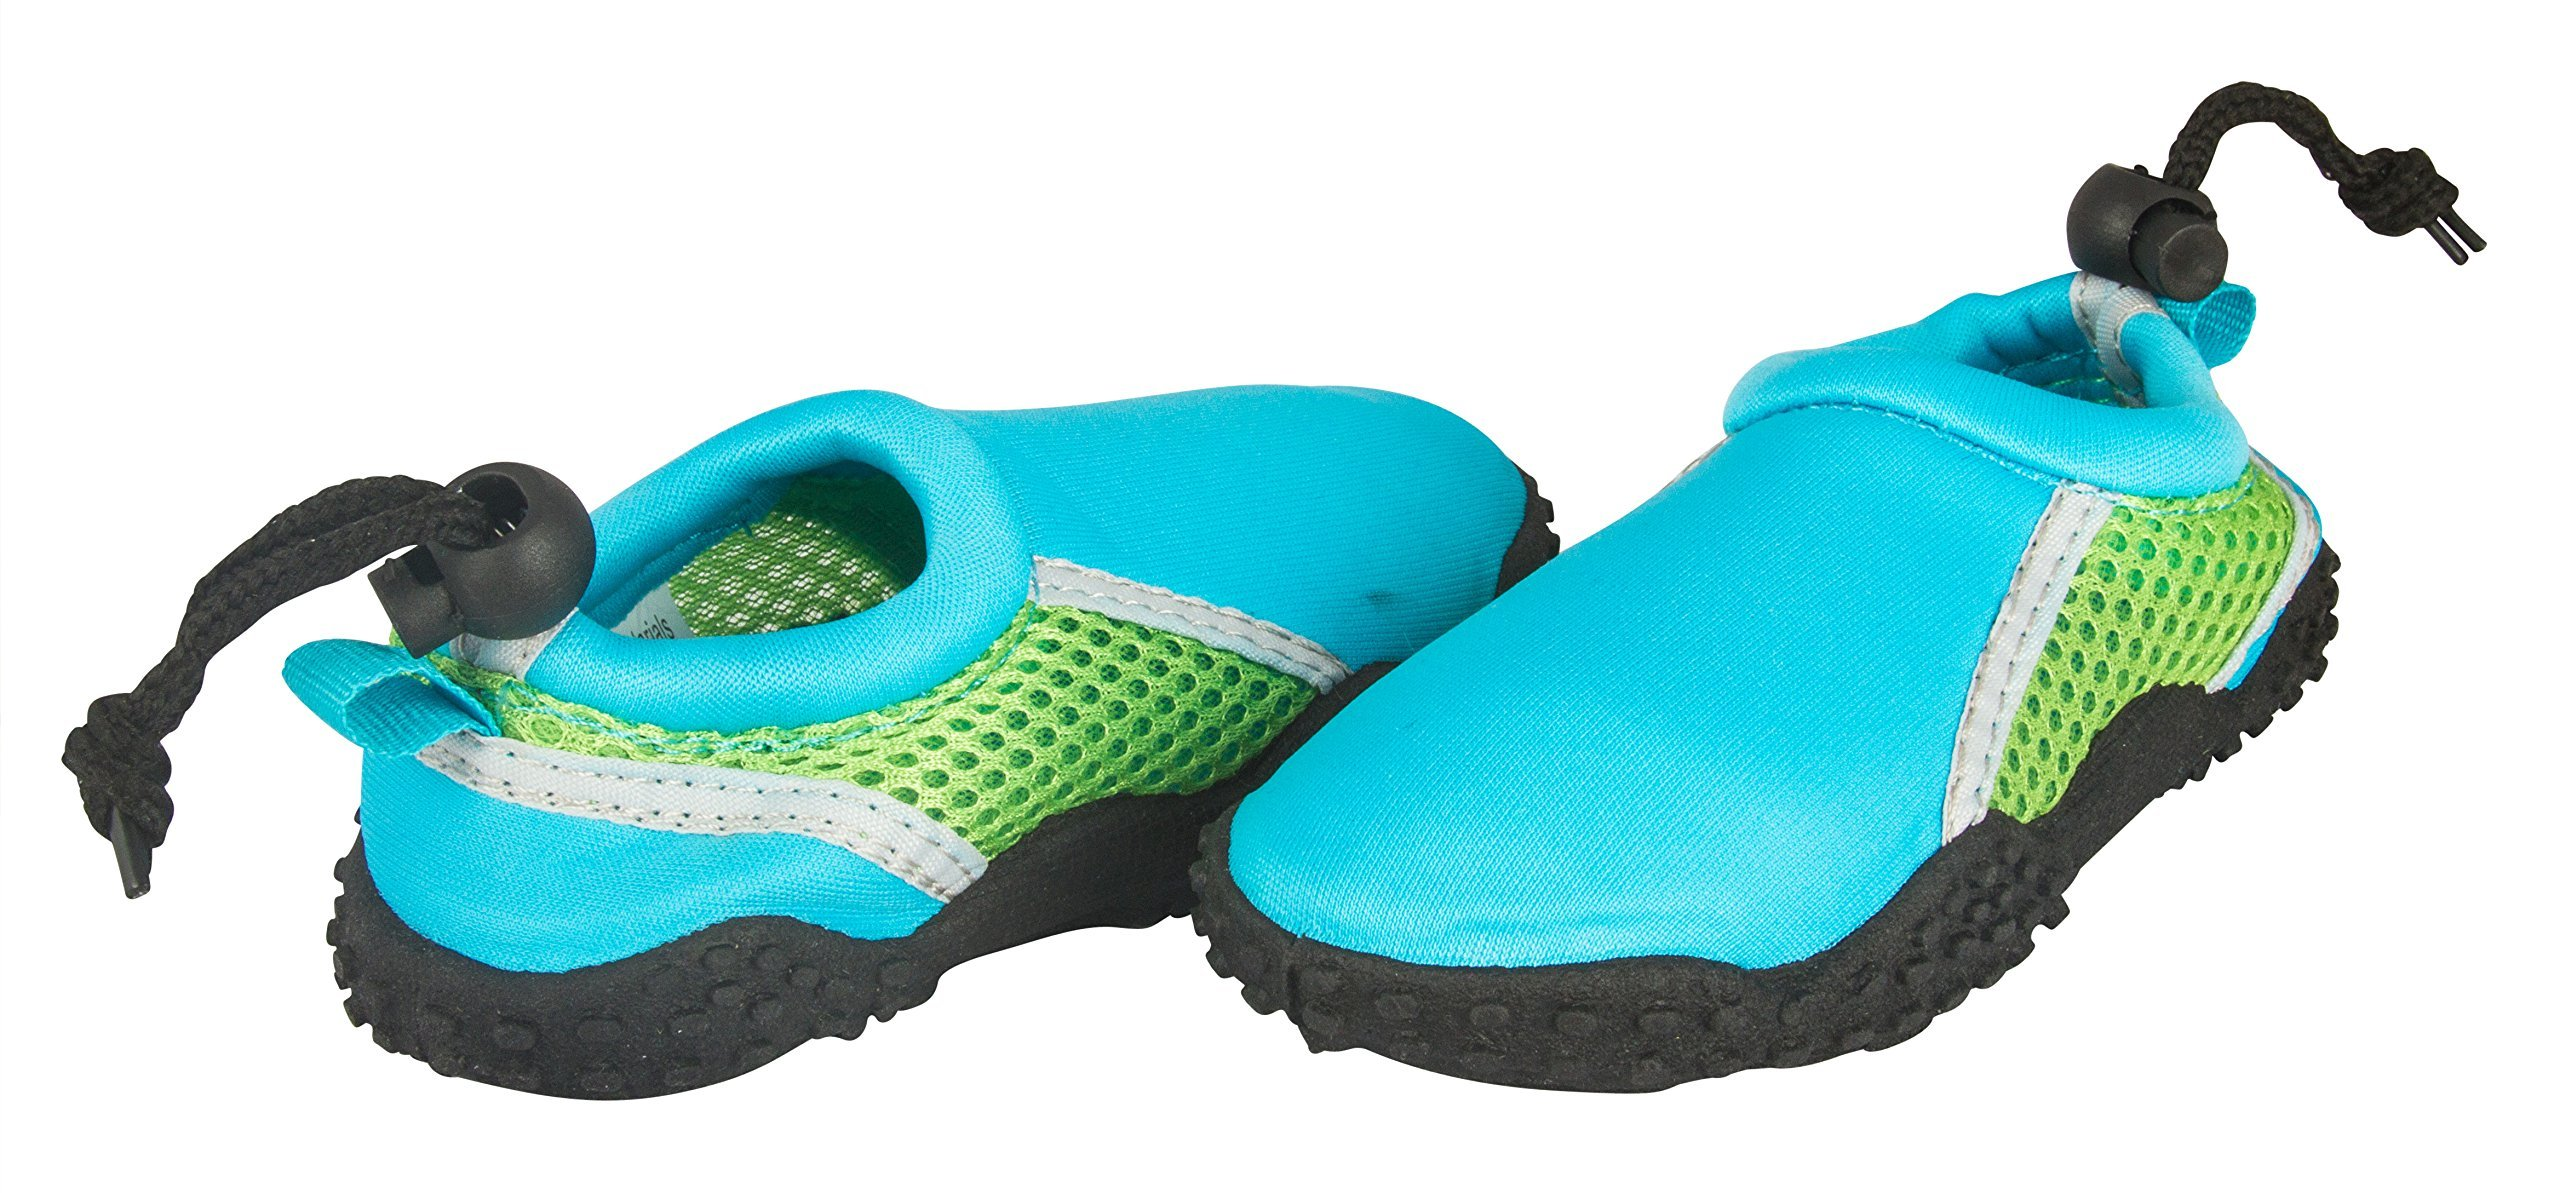 Shocked Toddler Neoprene and Mesh Water Beach Shoe Size 11-12 Turquoise/Green/Gray